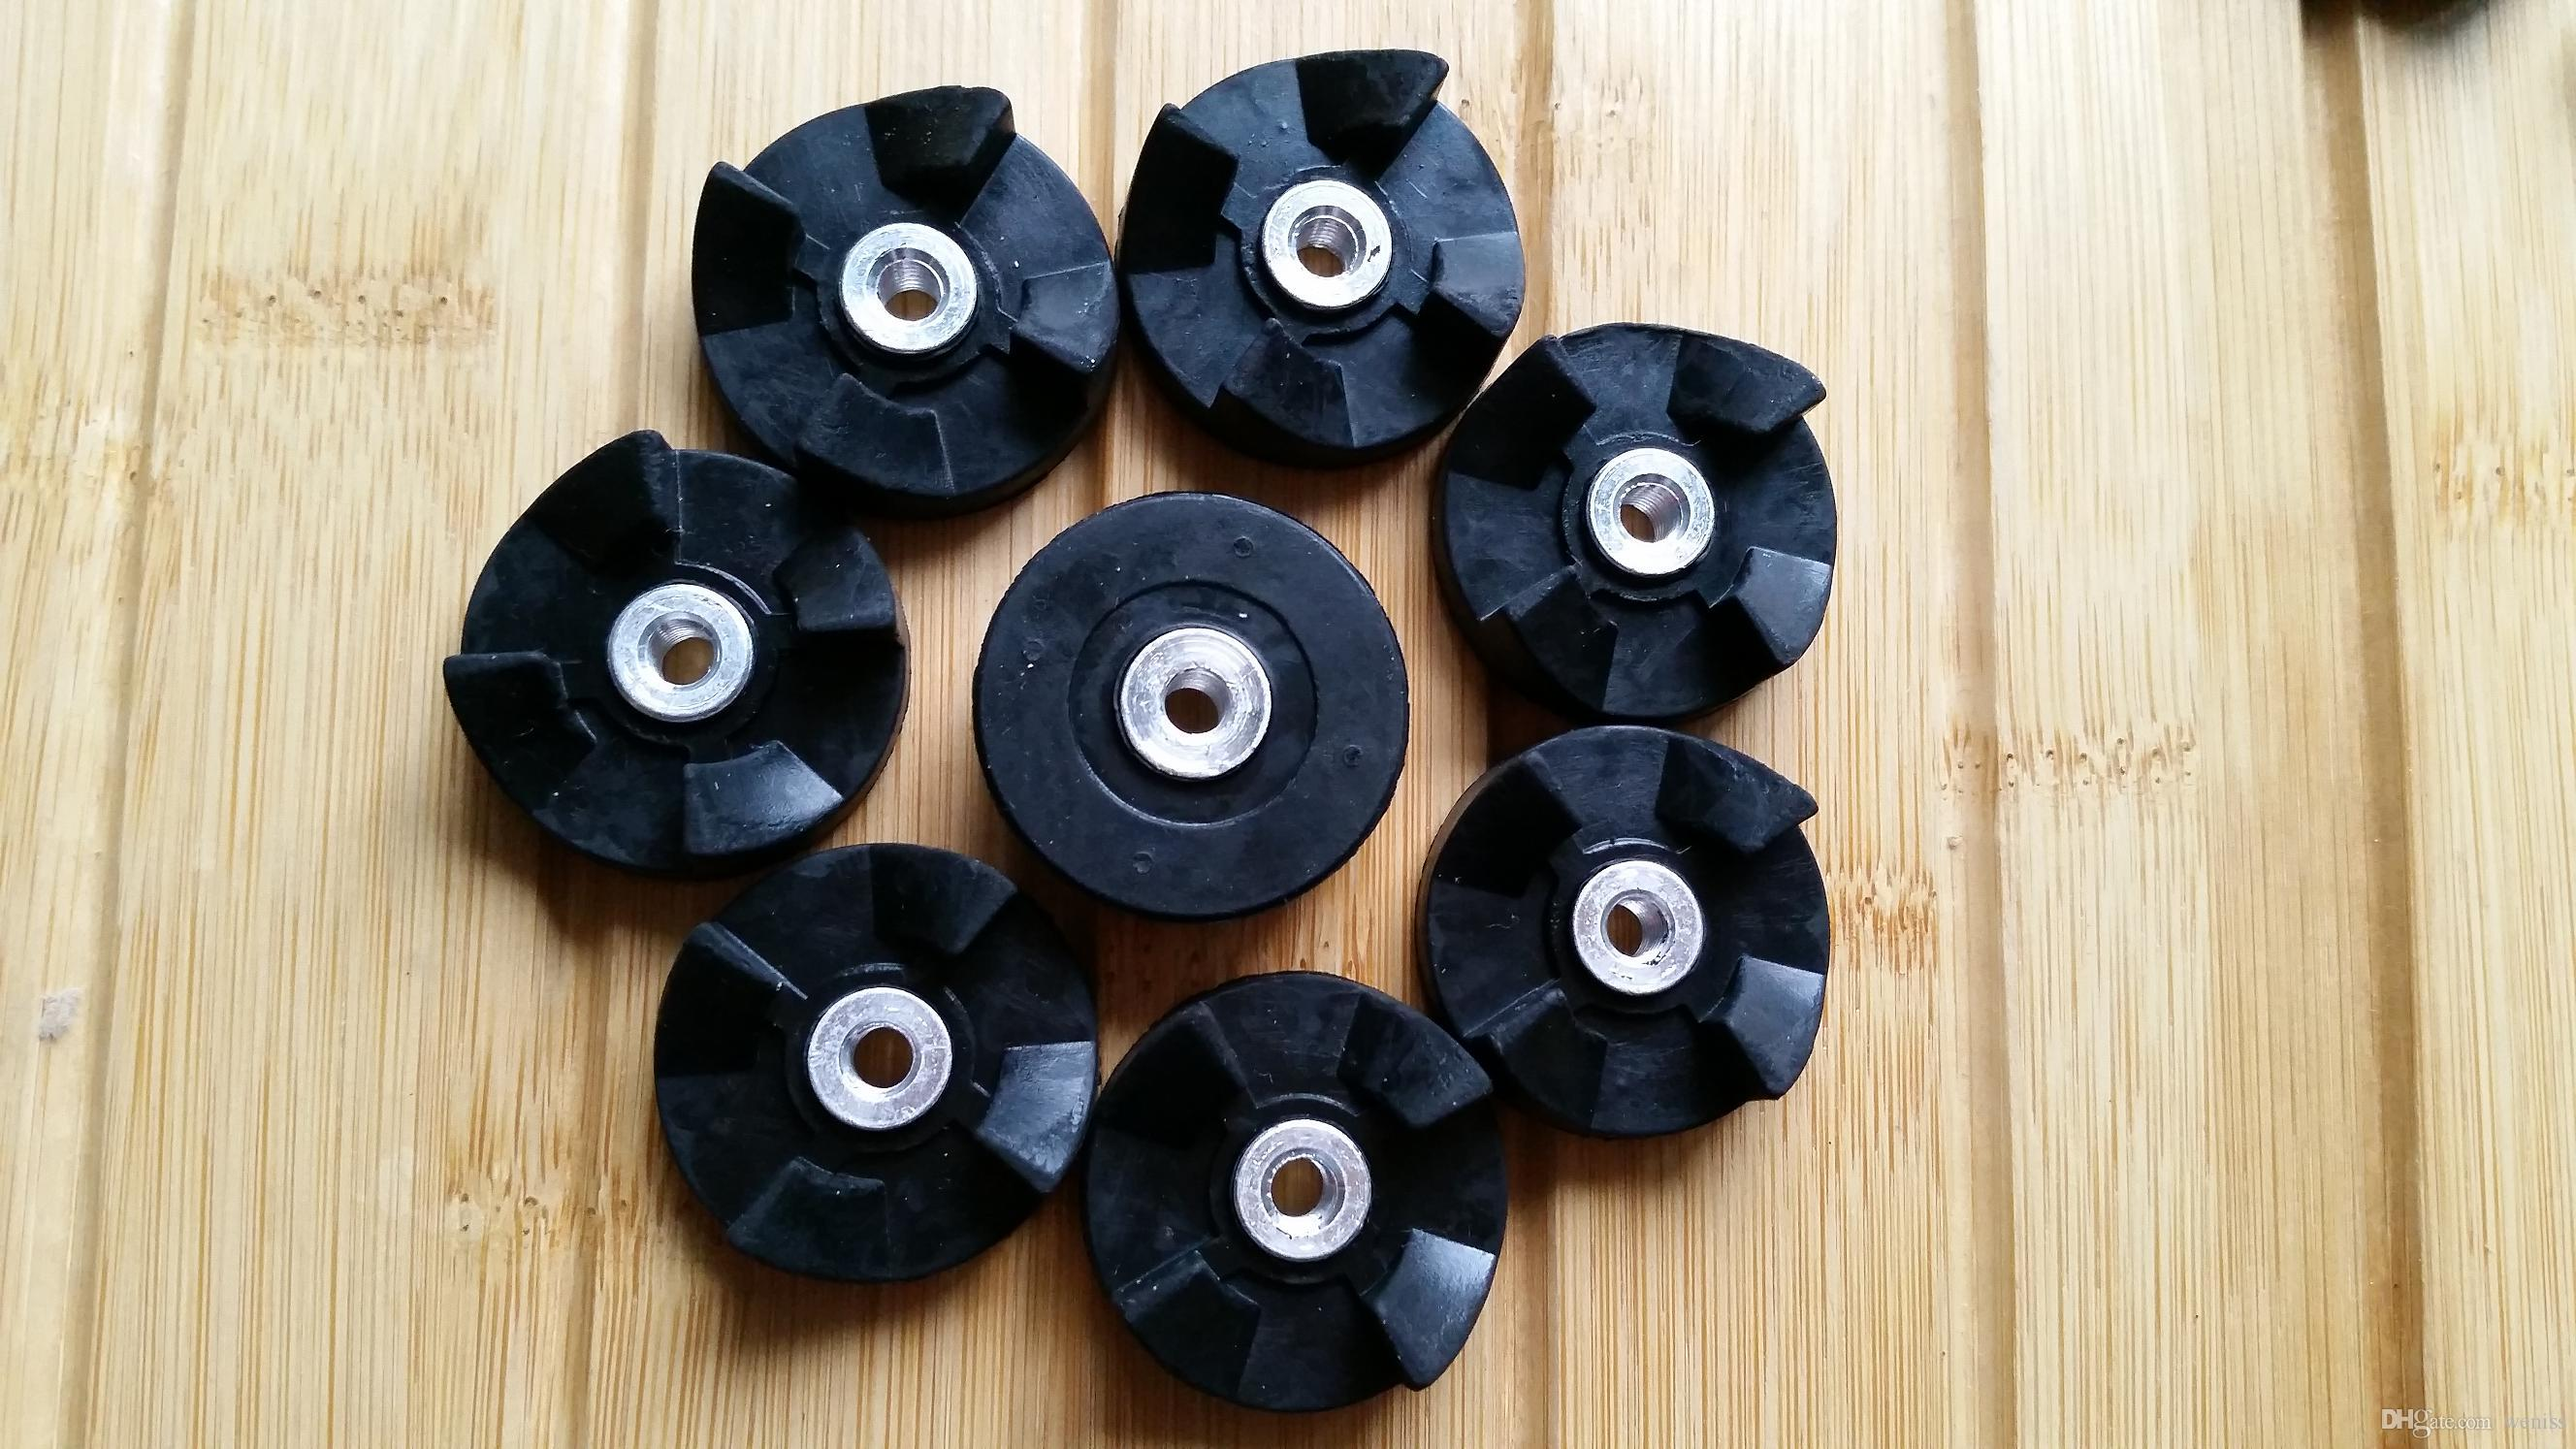 Hot selling Replacement rubber gear part for magic blender, user no need change whole machine